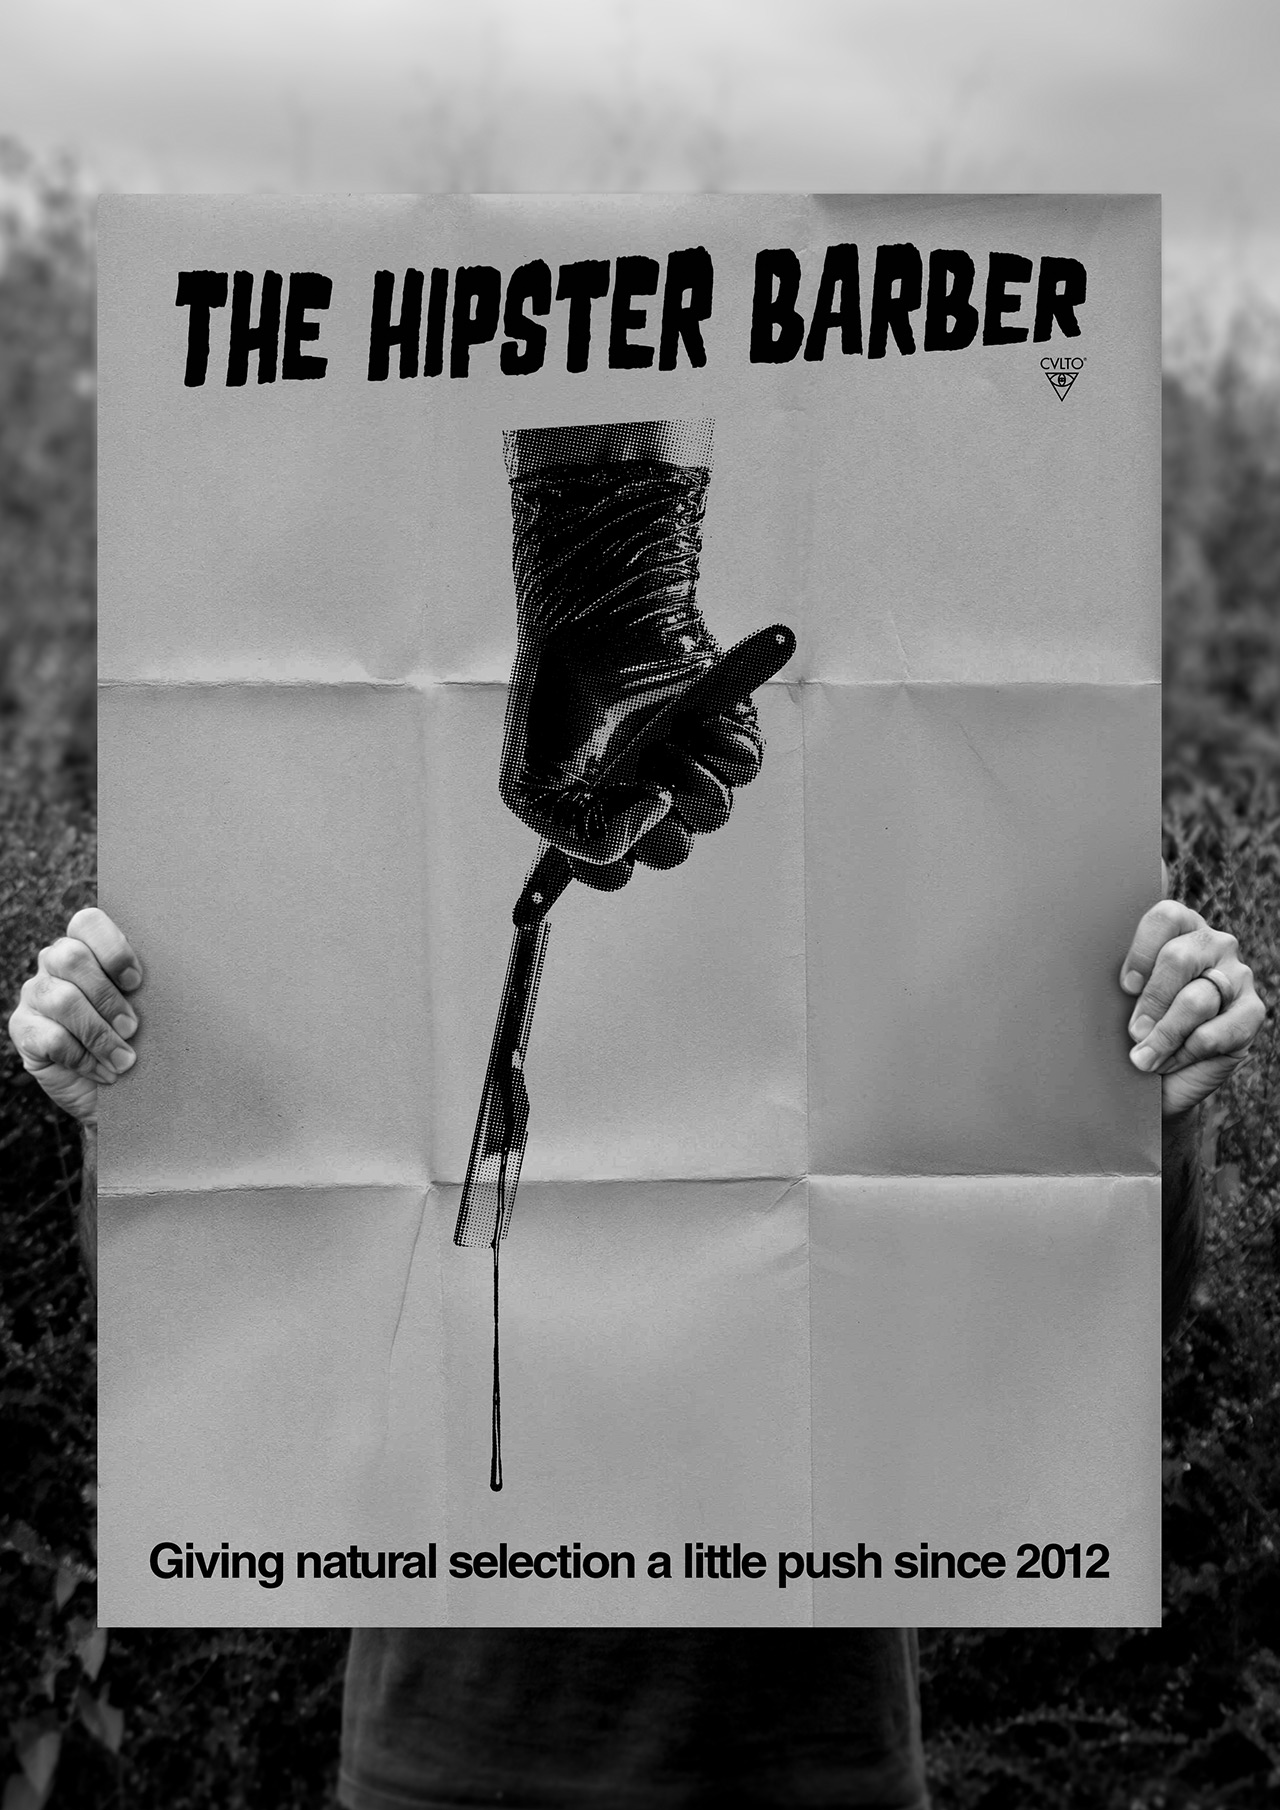 The Hipster Barber